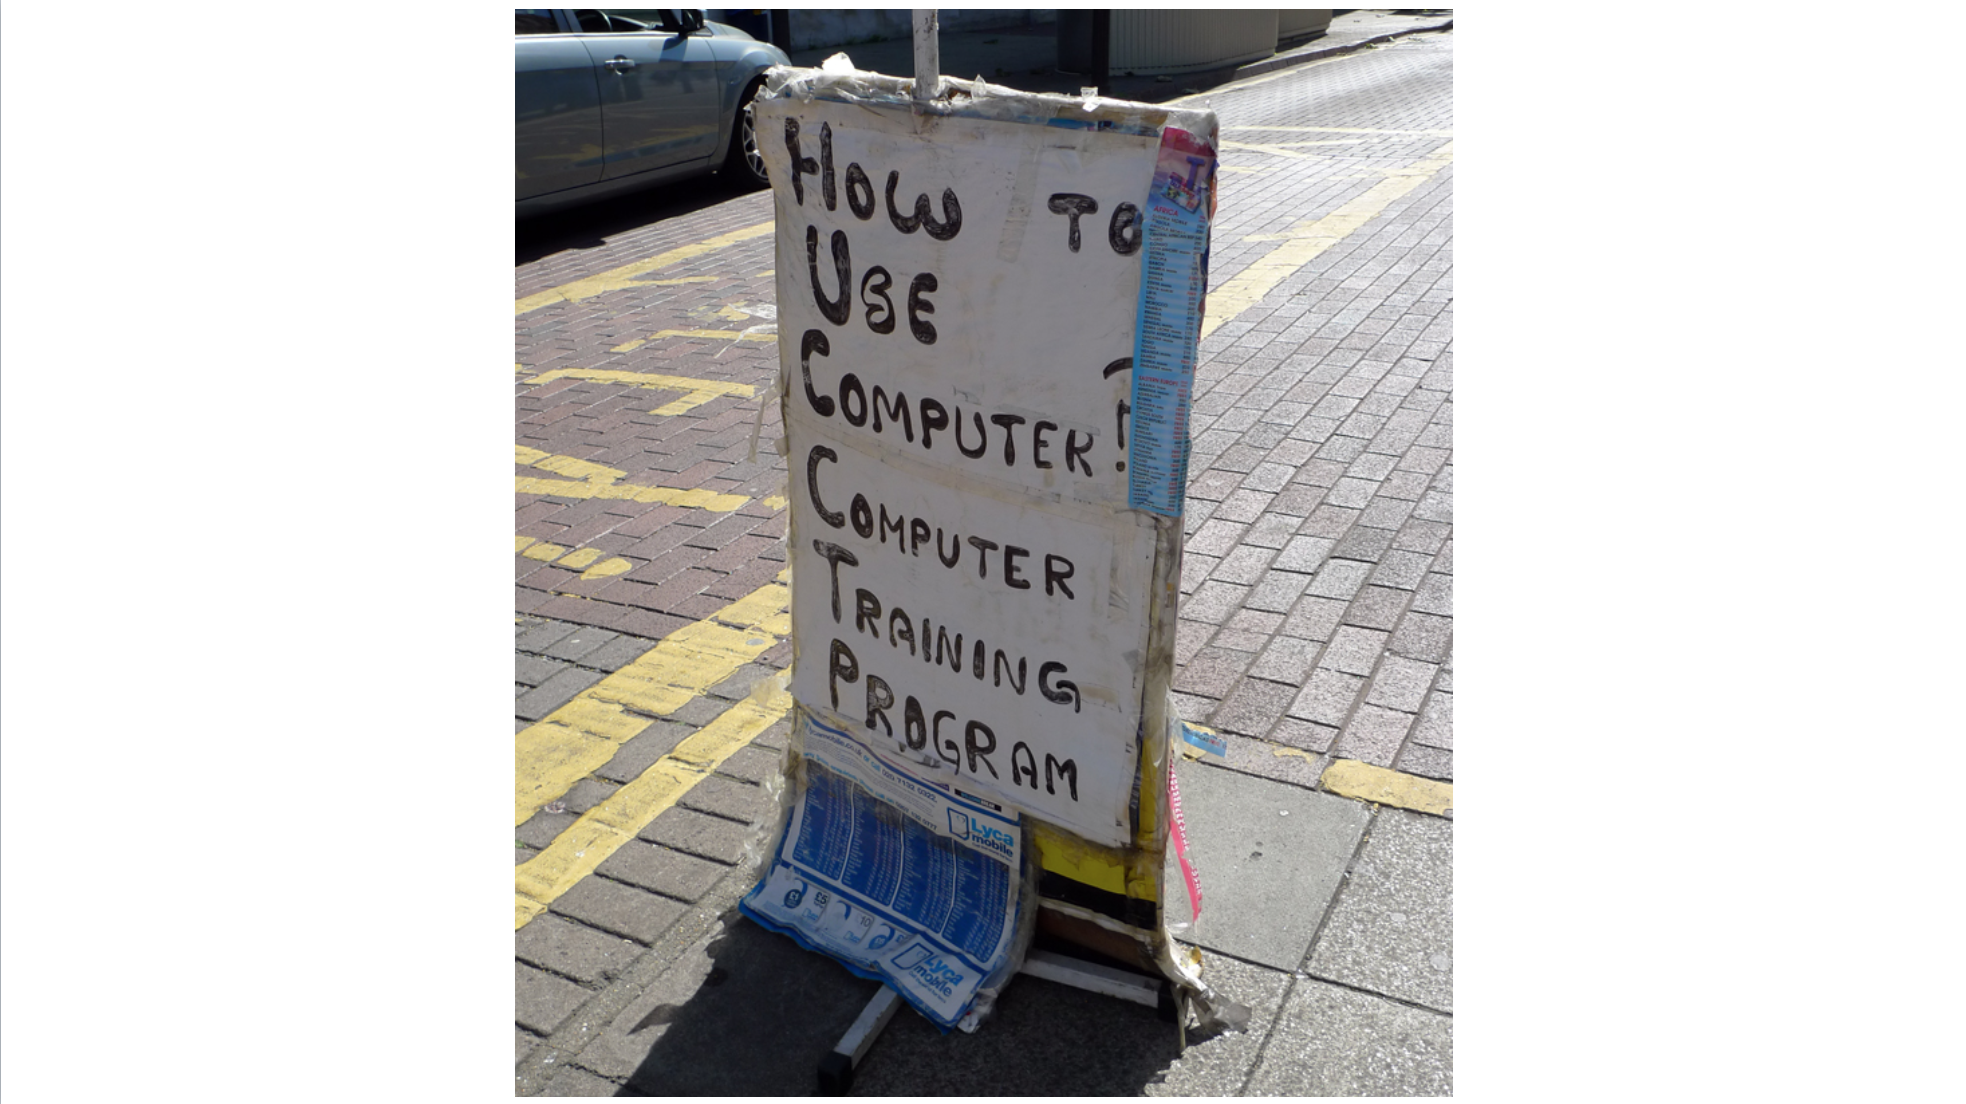 Street advert for computer training